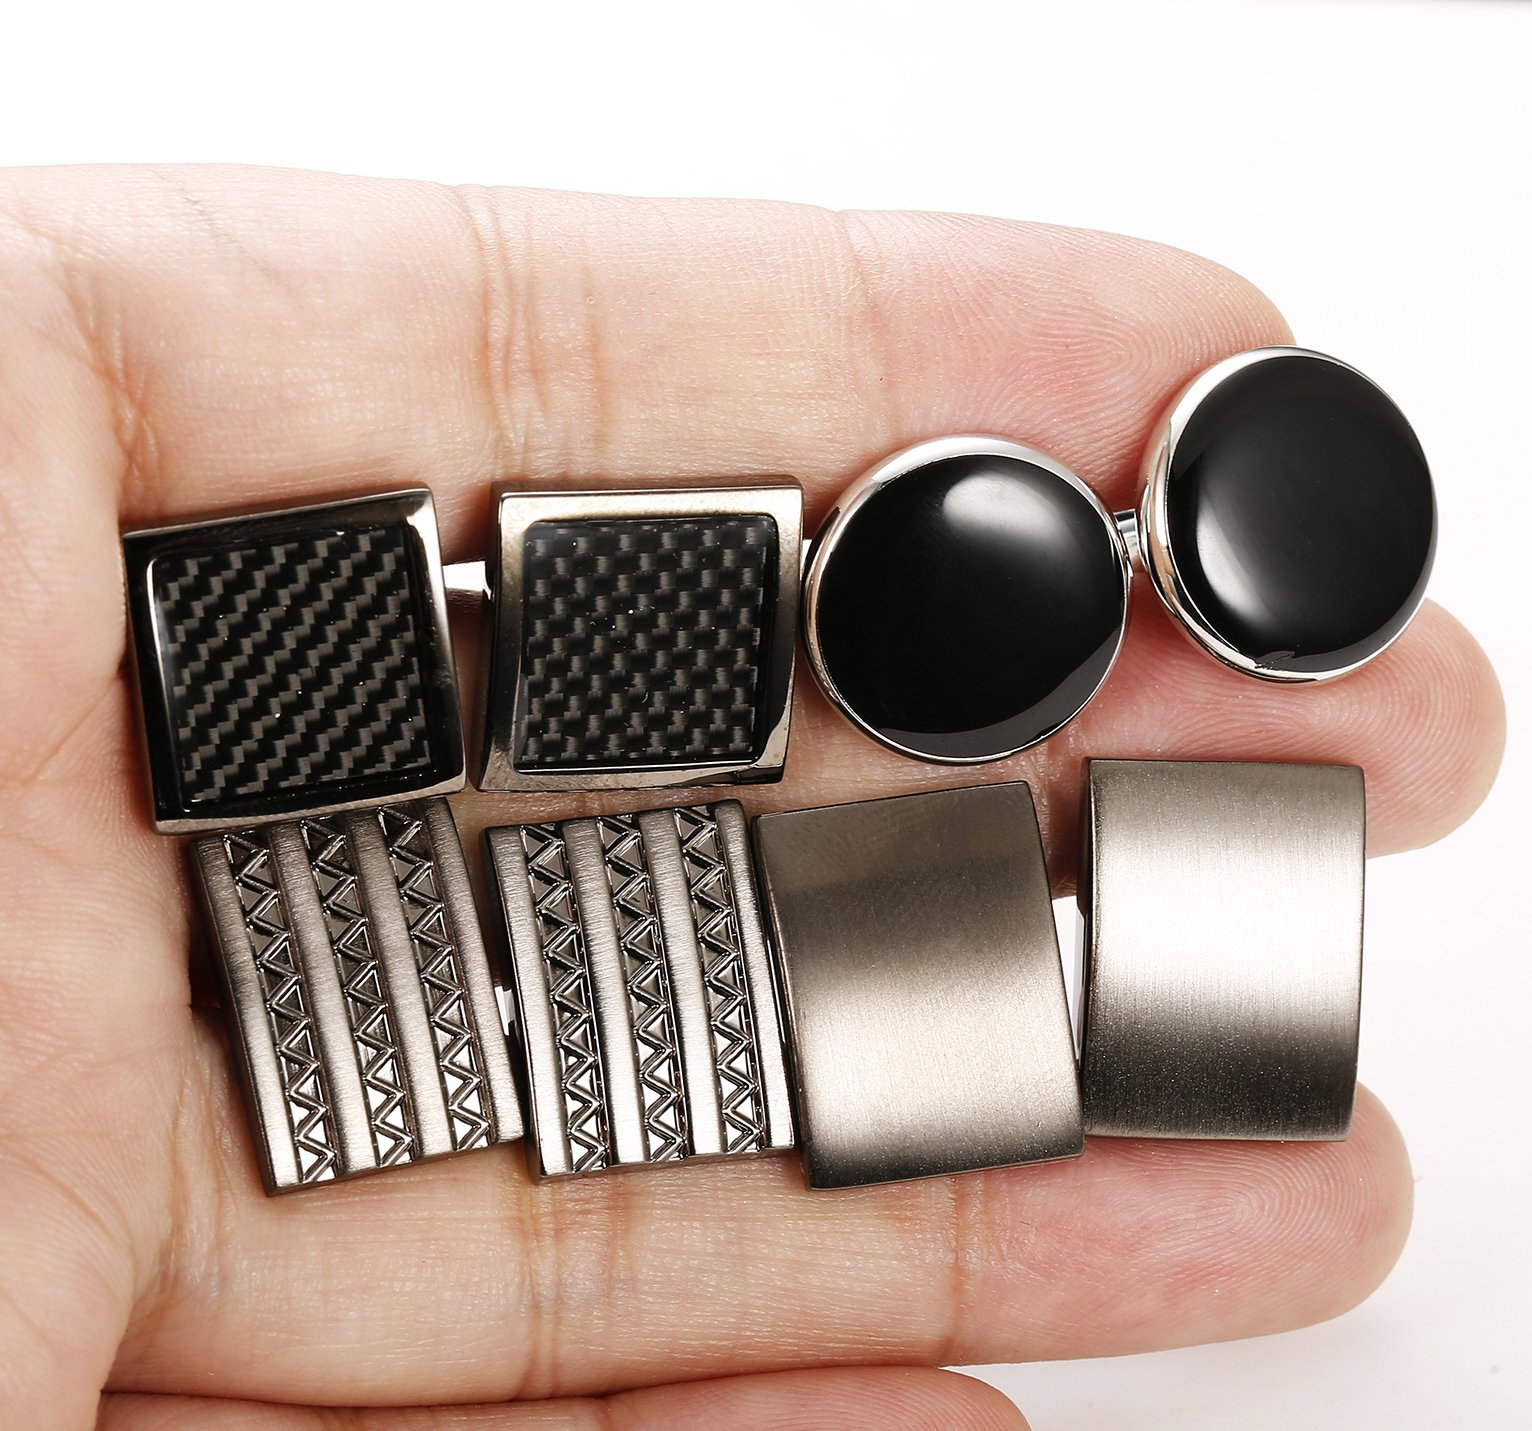 FIBO STEEL Class Cufflinks for Men Black Unique Wedding Cufflink Set Mens Dad Birthday Gifts by FIBO STEEL (Image #7)